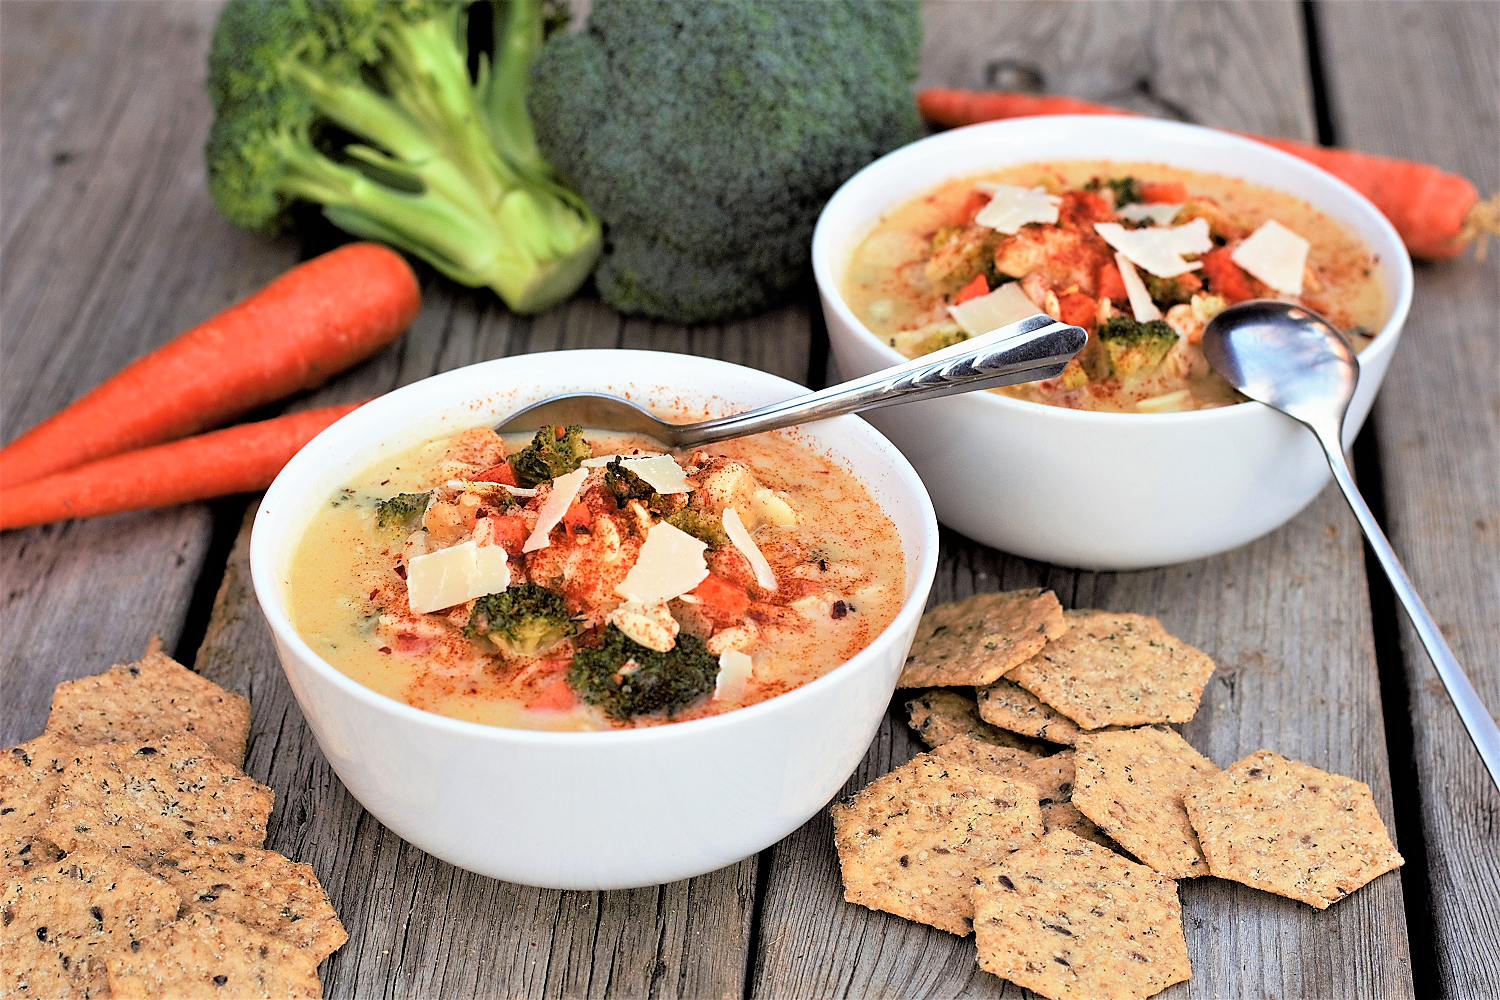 Classic casserole flavors remade into a velvety, healthyish soup! Packed with chicken, broccoli, & three kinds of cheese - good enough to make a Midwestern casserole man very happy.